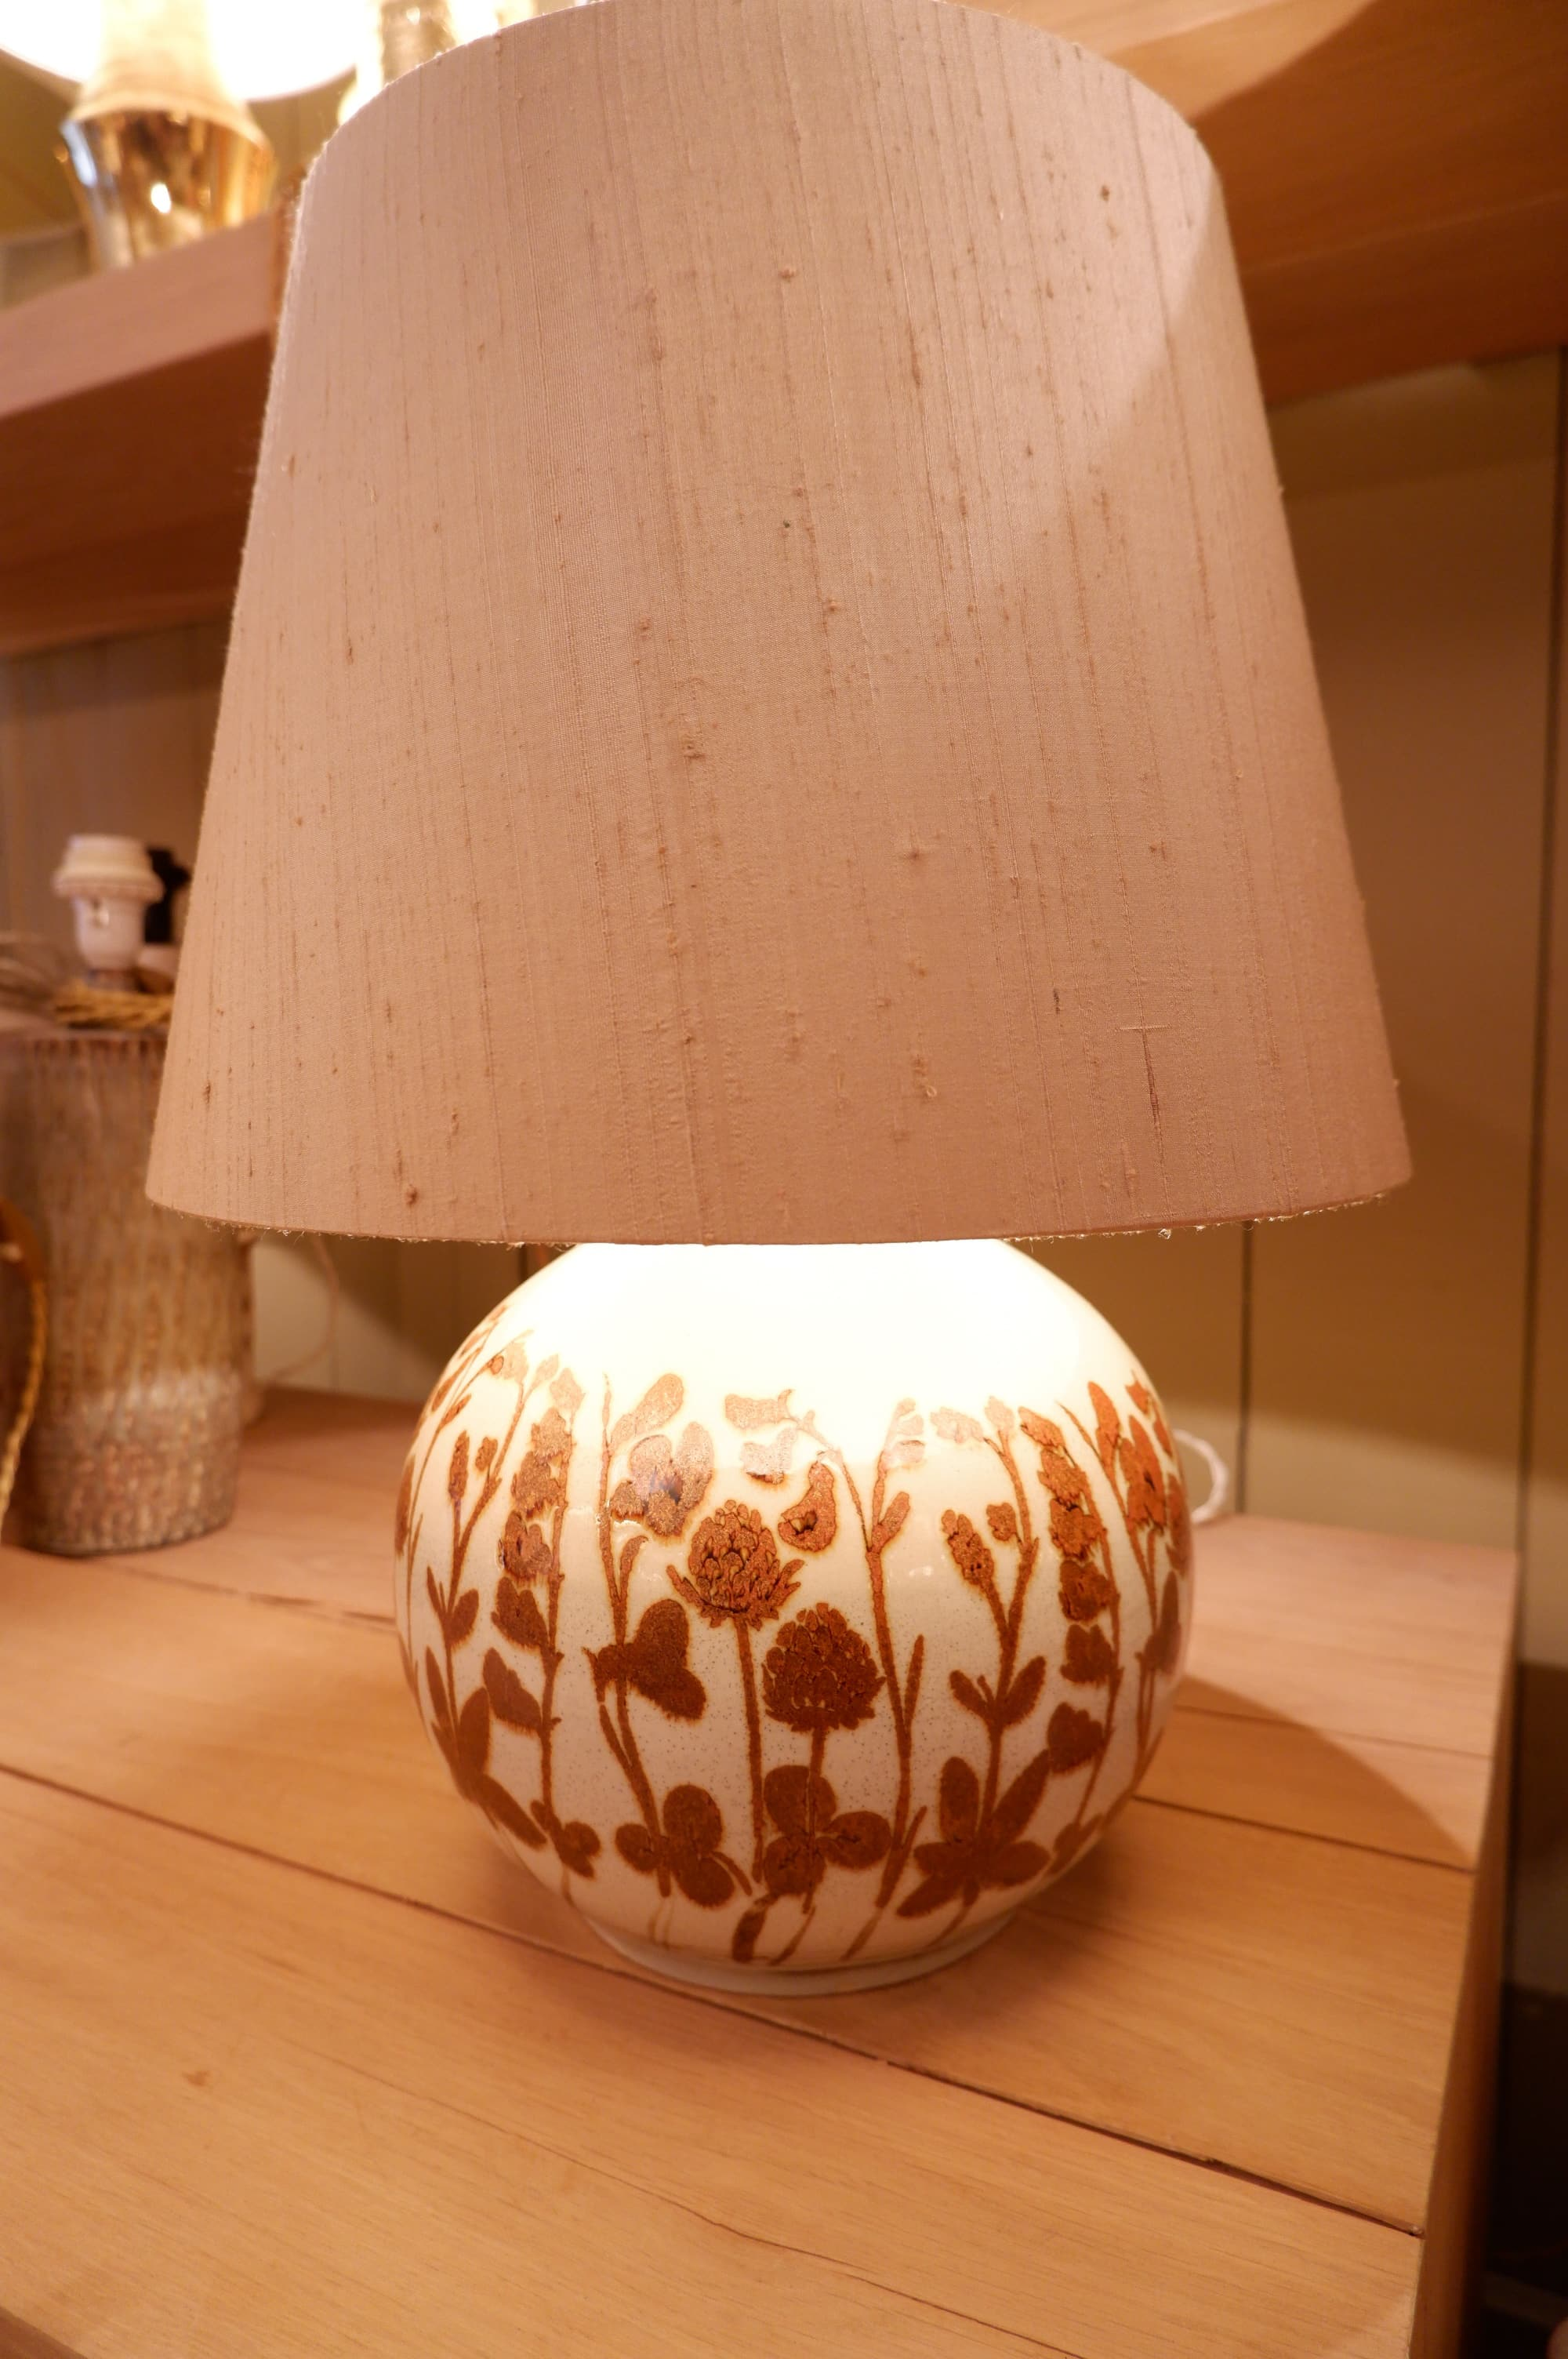 A ceramic ball shaped table lamp with flowers decor, signed by CARL HARRY STAHLANE Ca.1970